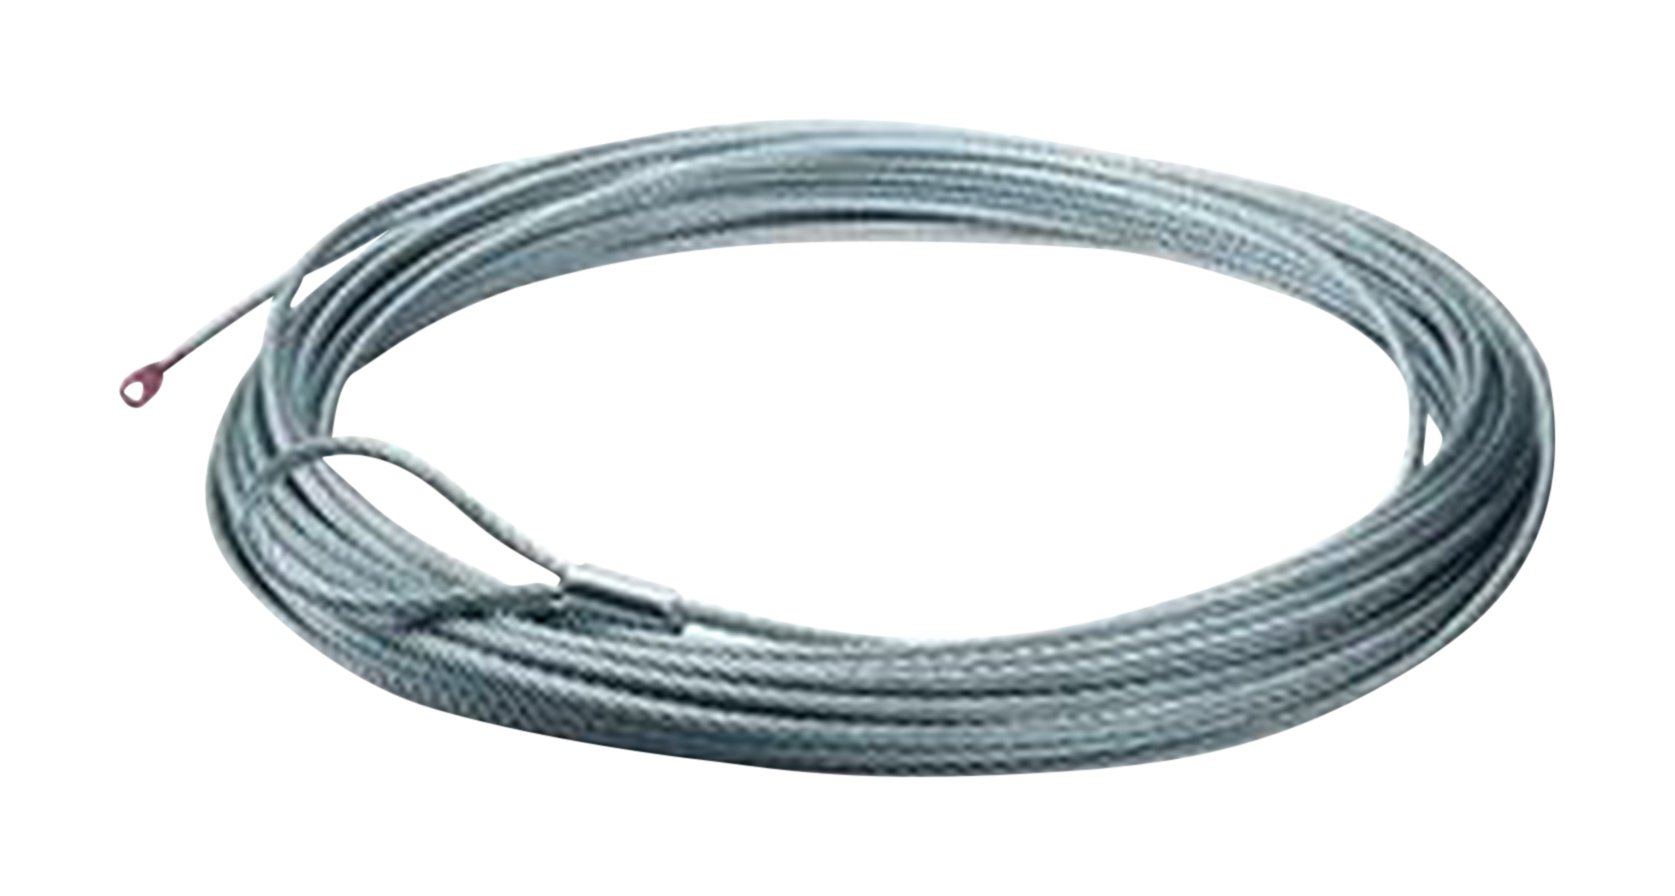 WARN 26749 Winch Rope - 5/16 in. x 150 ft.